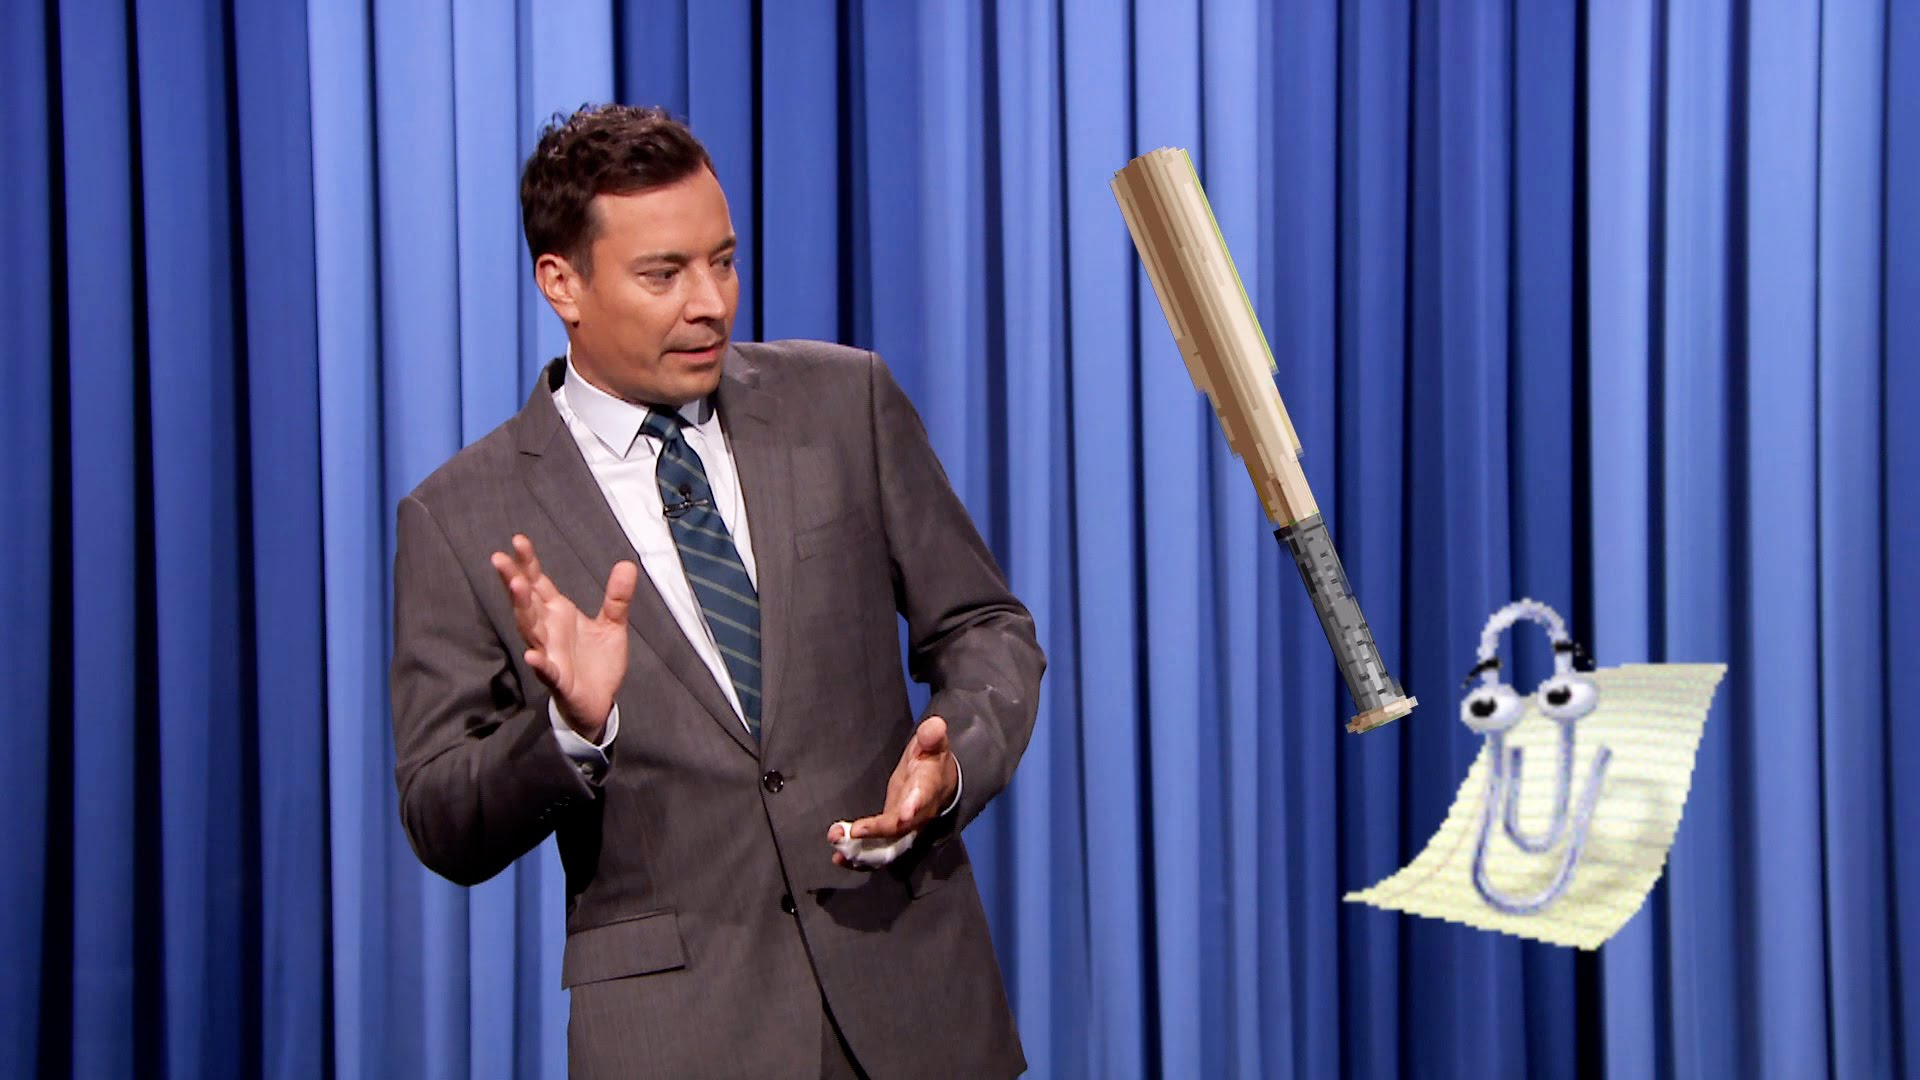 Watch Late Night with Jimmy Fallon Season  - Microsoft Office's Clippy Brings Windows 10 to The Tonight Show Online